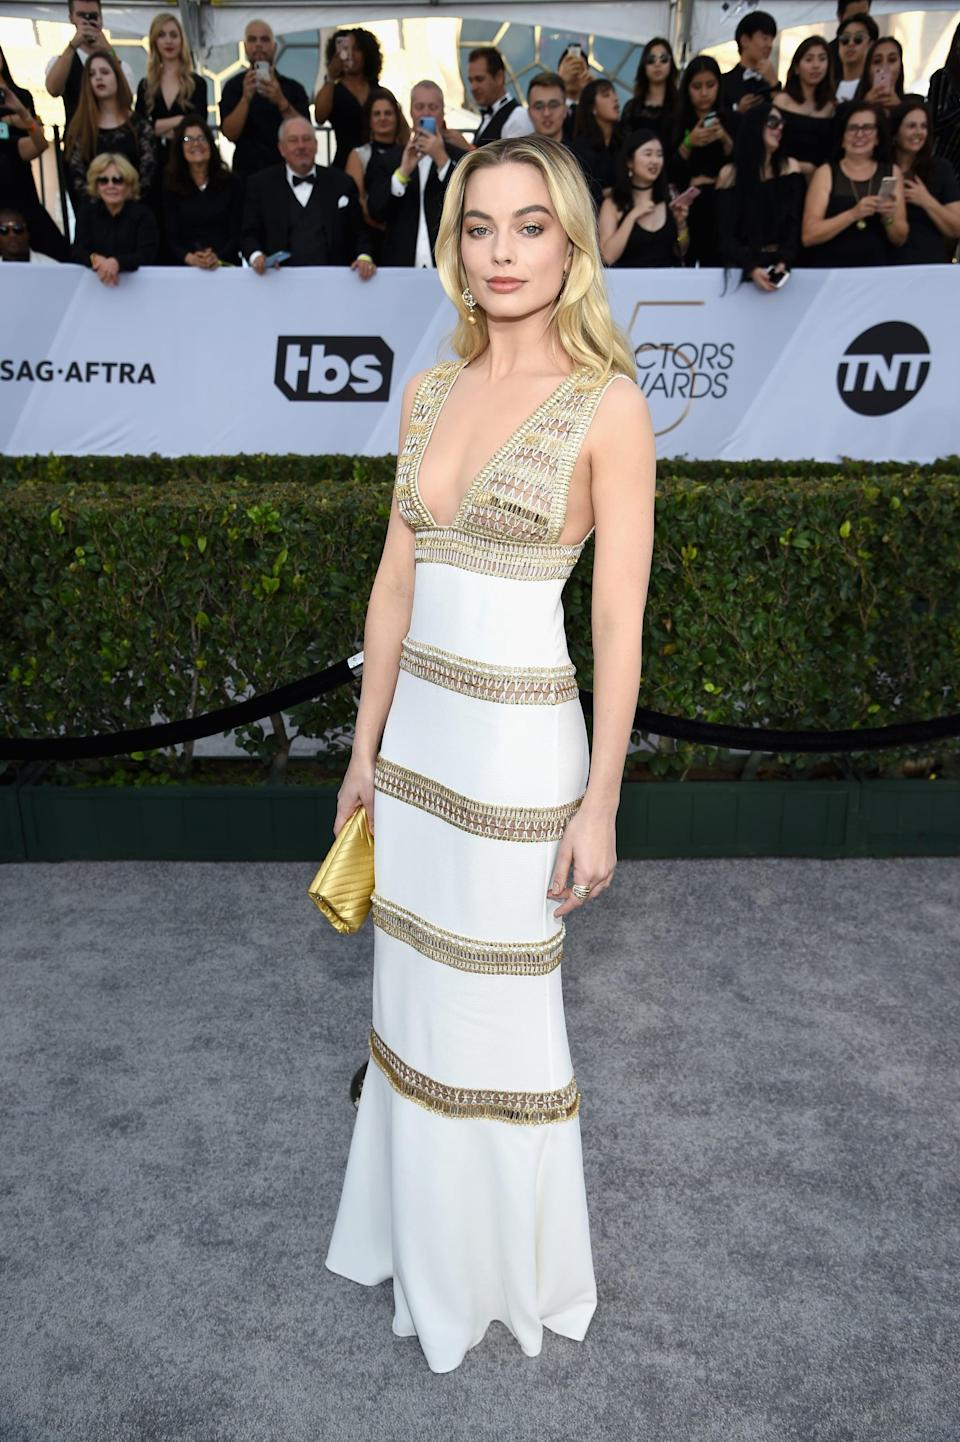 <p>Wearing a white and gold Chanel dress with a clutch from the brand as well. She finished her look off with Giuseppe Zanotti heels.</p>